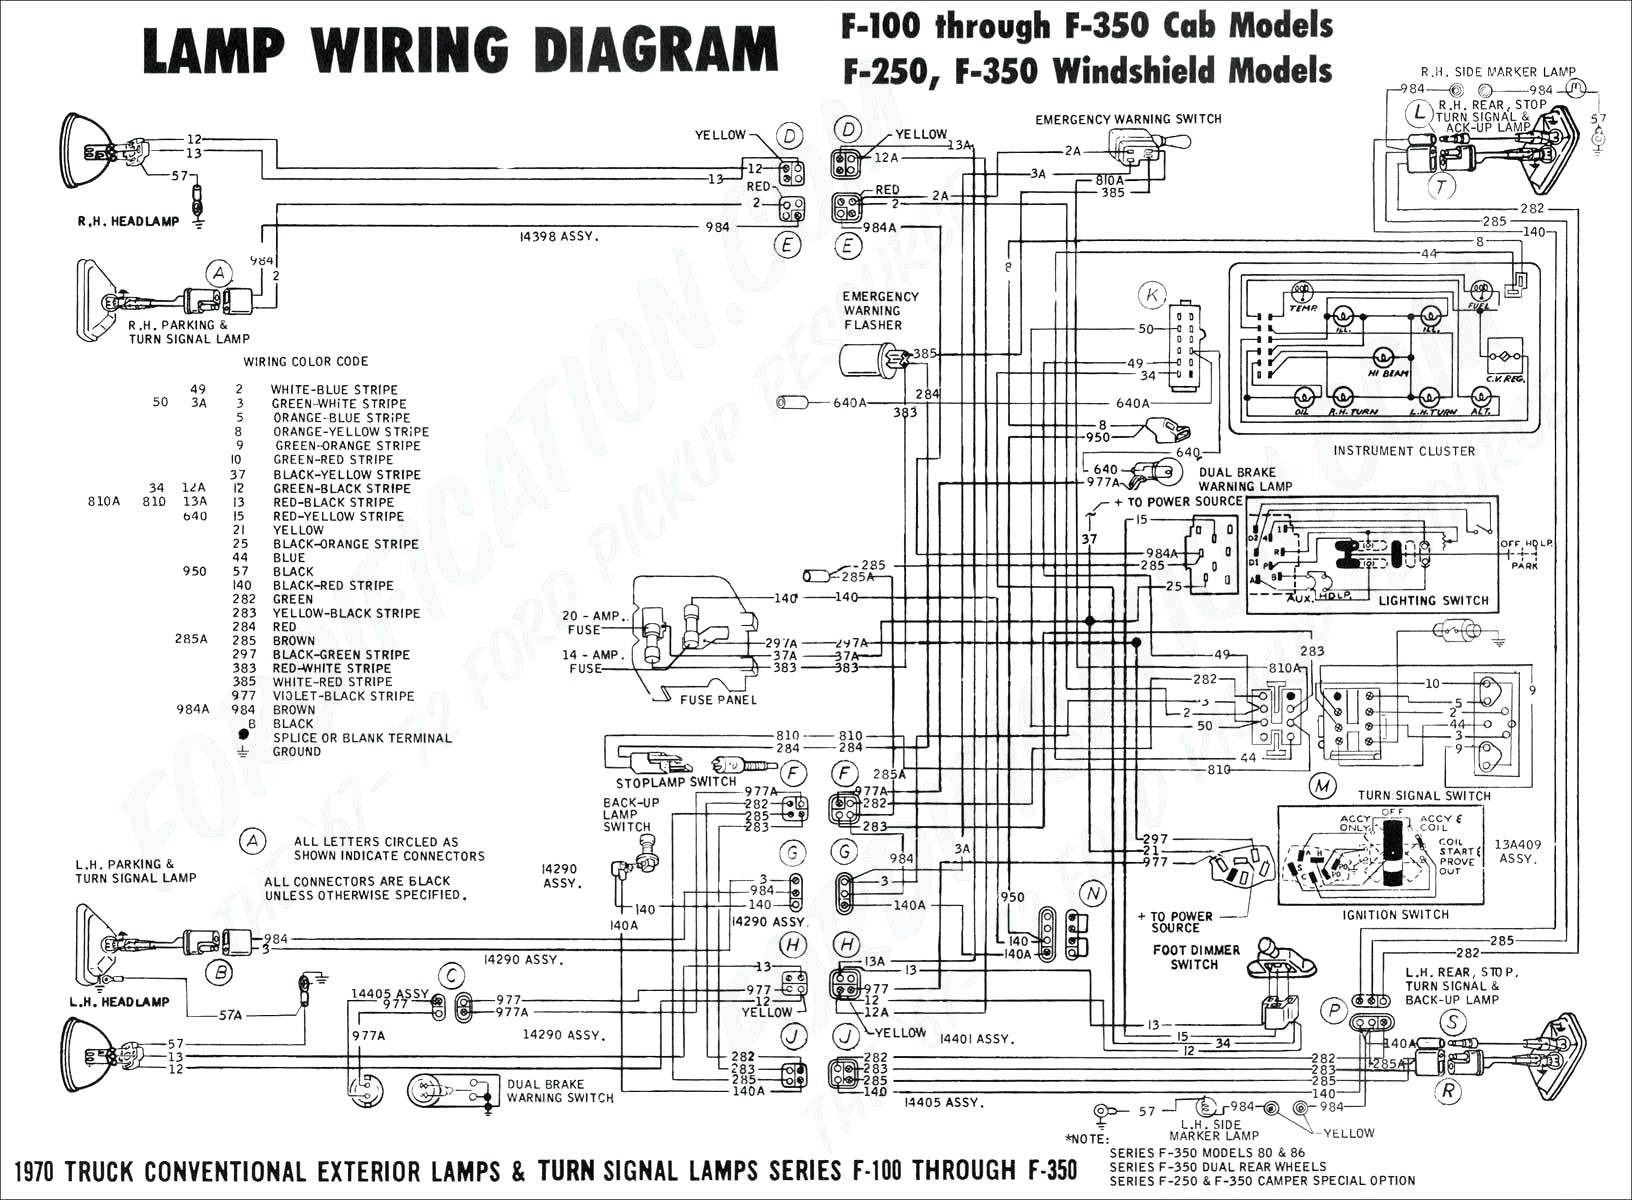 2001 Dodge Caravan Engine Diagram Dodge Lights Wiring Diagram Wiring Diagram Datasource Of 2001 Dodge Caravan Engine Diagram